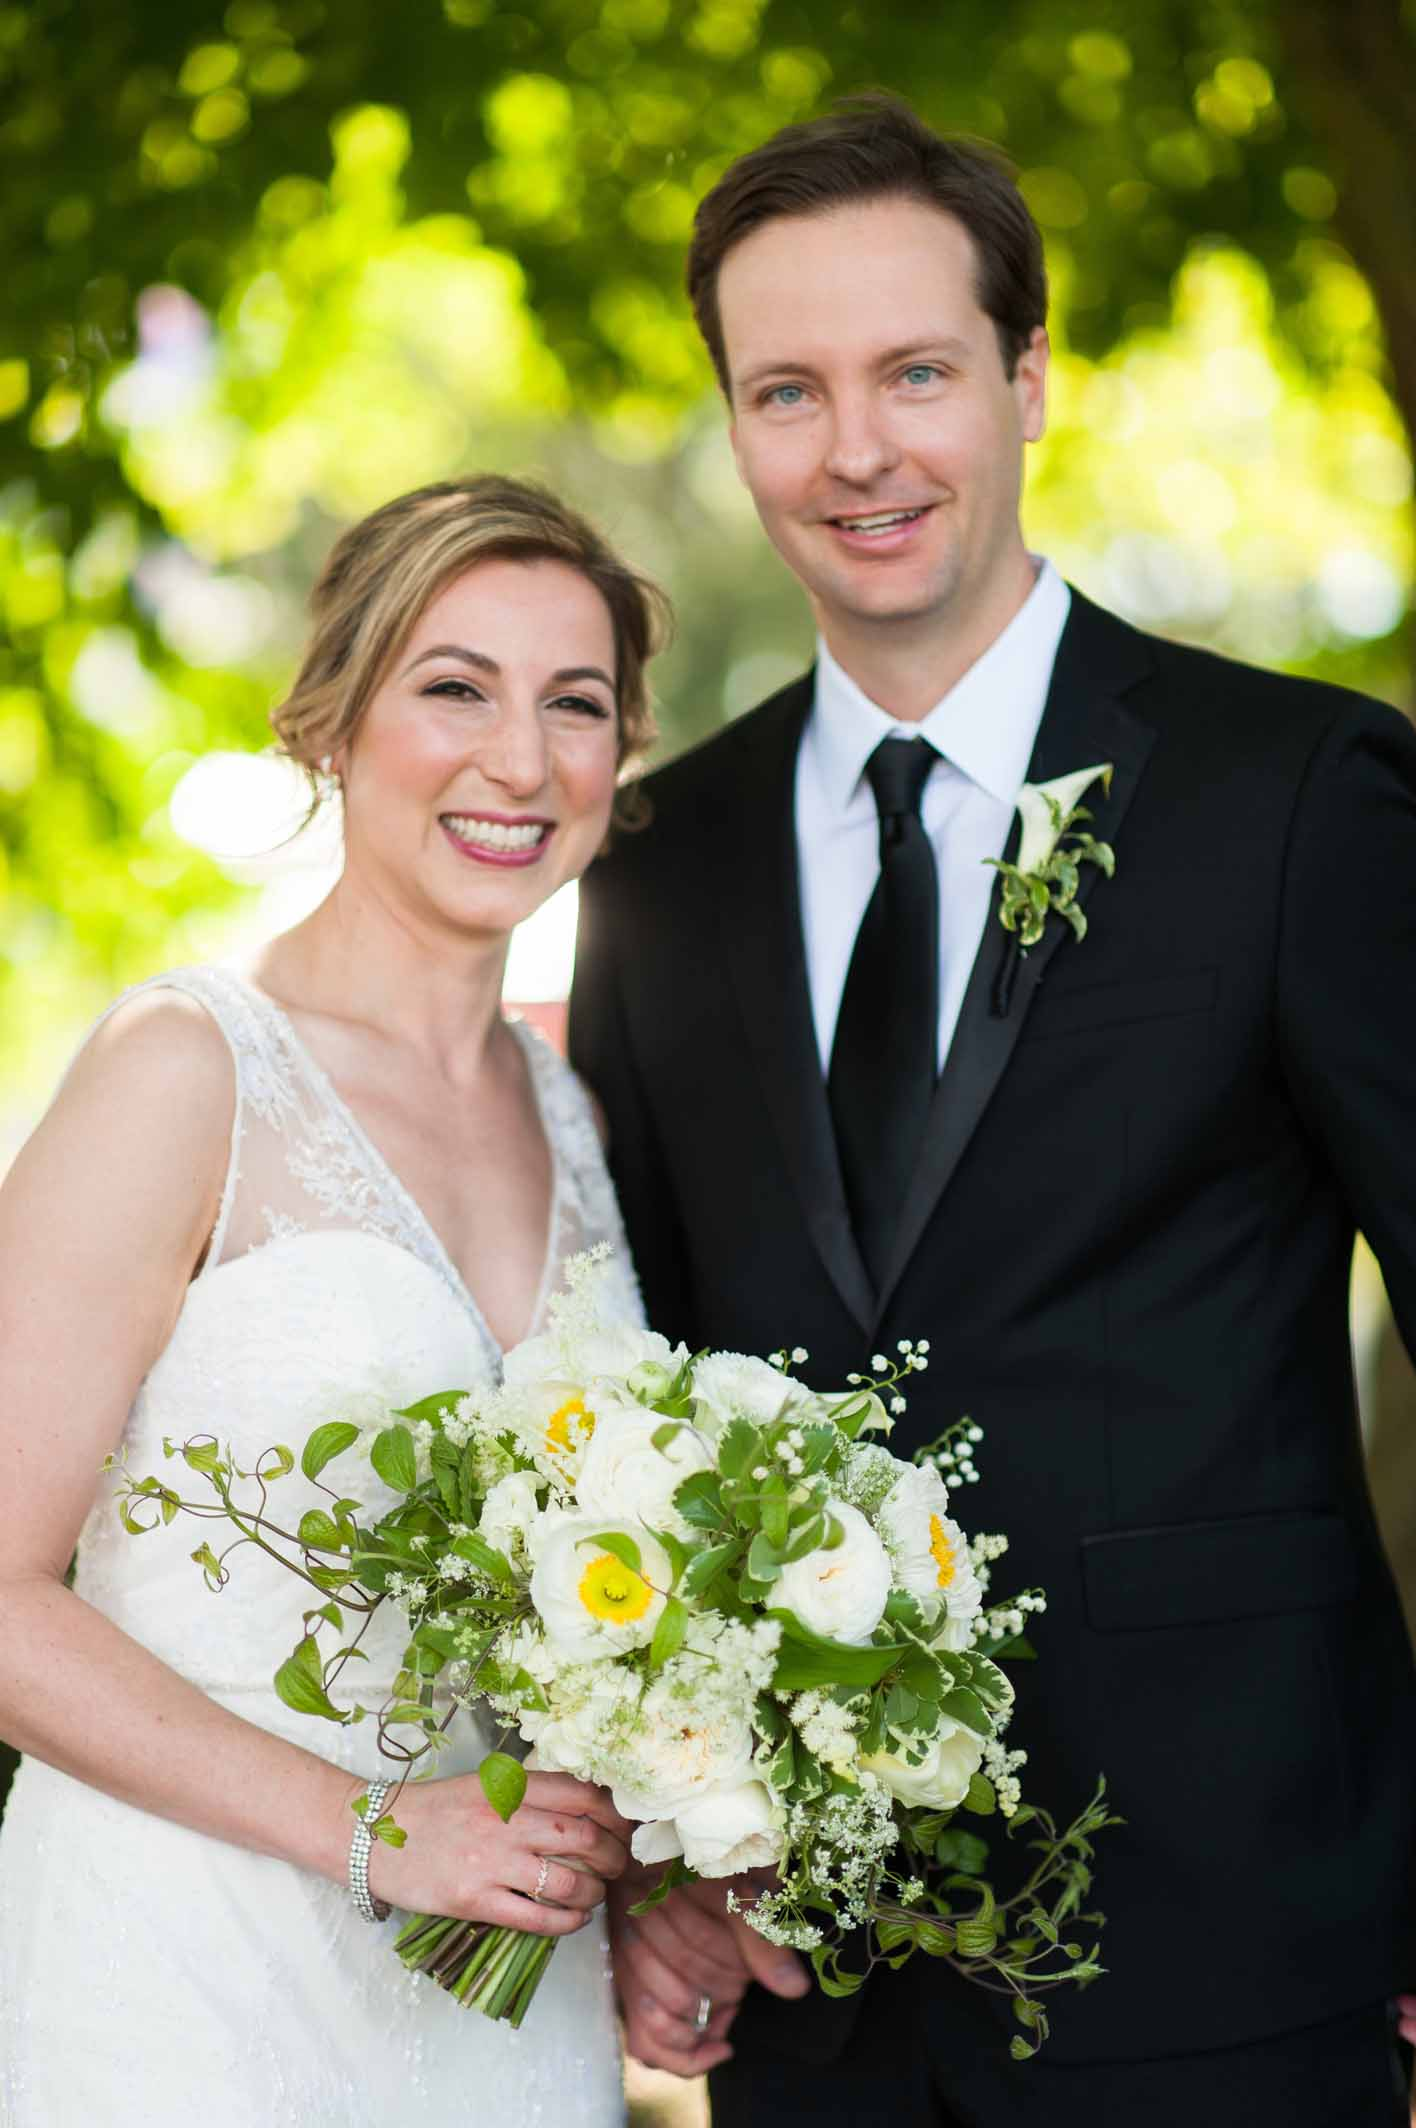 Elissa and upshur, wedding couple at spring wedding, with bouquet of white and yellow spring flowers - designed by Flora Nova Design